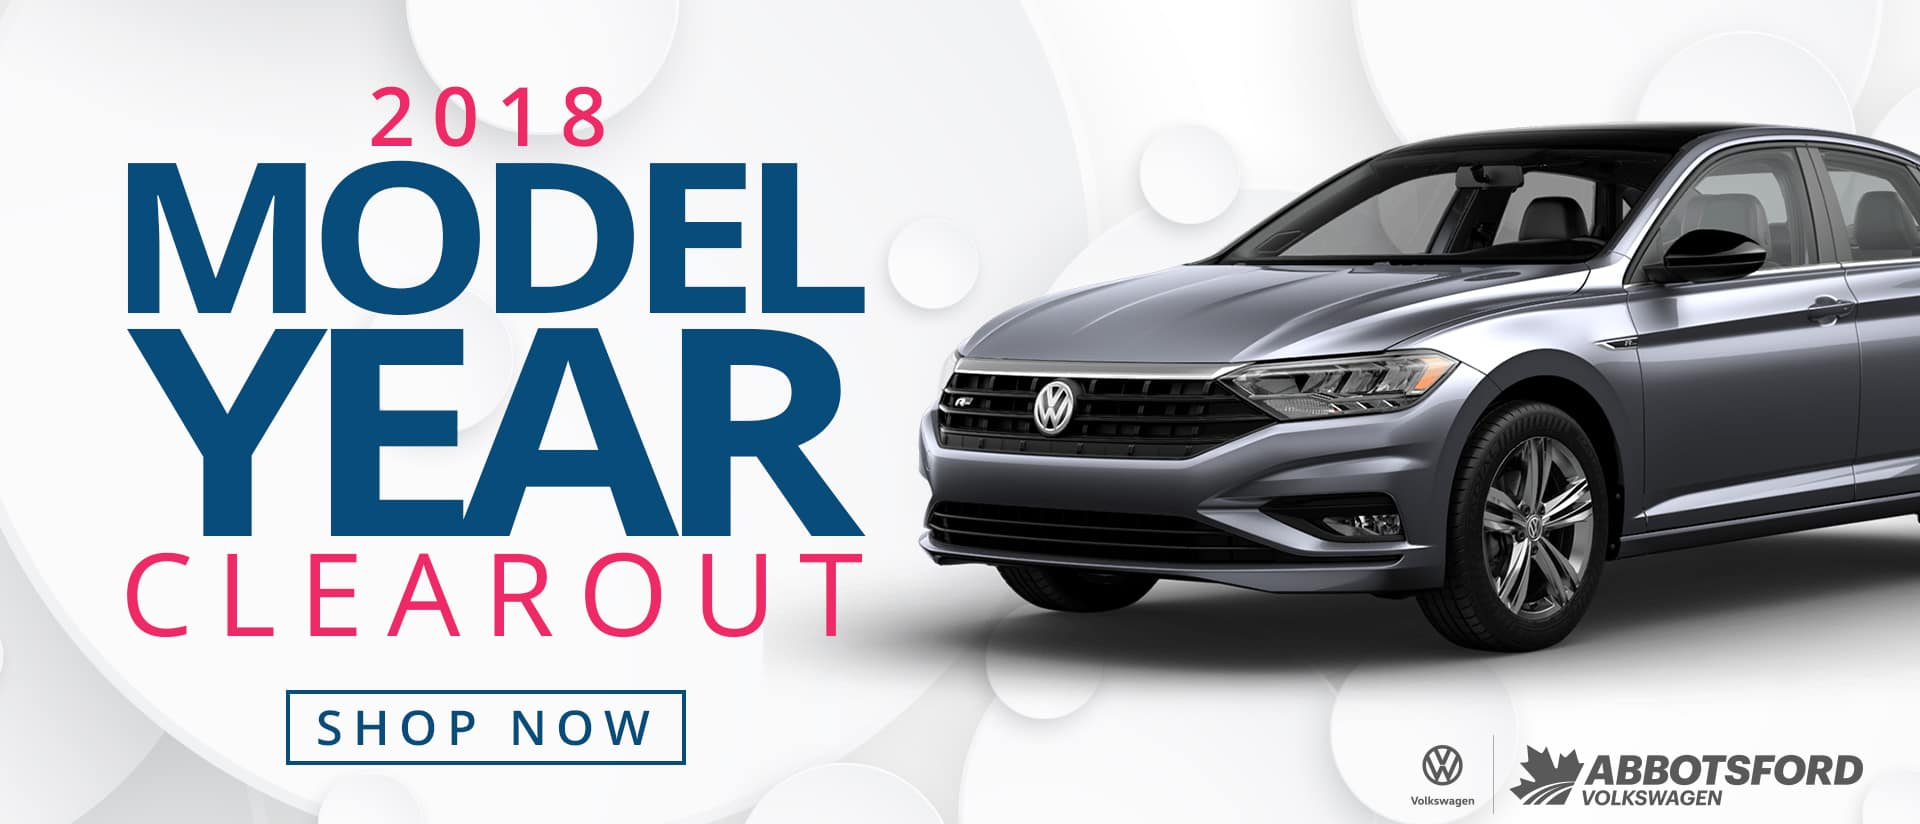 The 2018 Model Year Clearout is on now! Don't miss your opportunity to get some of the best prices on new vehicles all year long! Visit us today at Abbotsford VW TODAY!